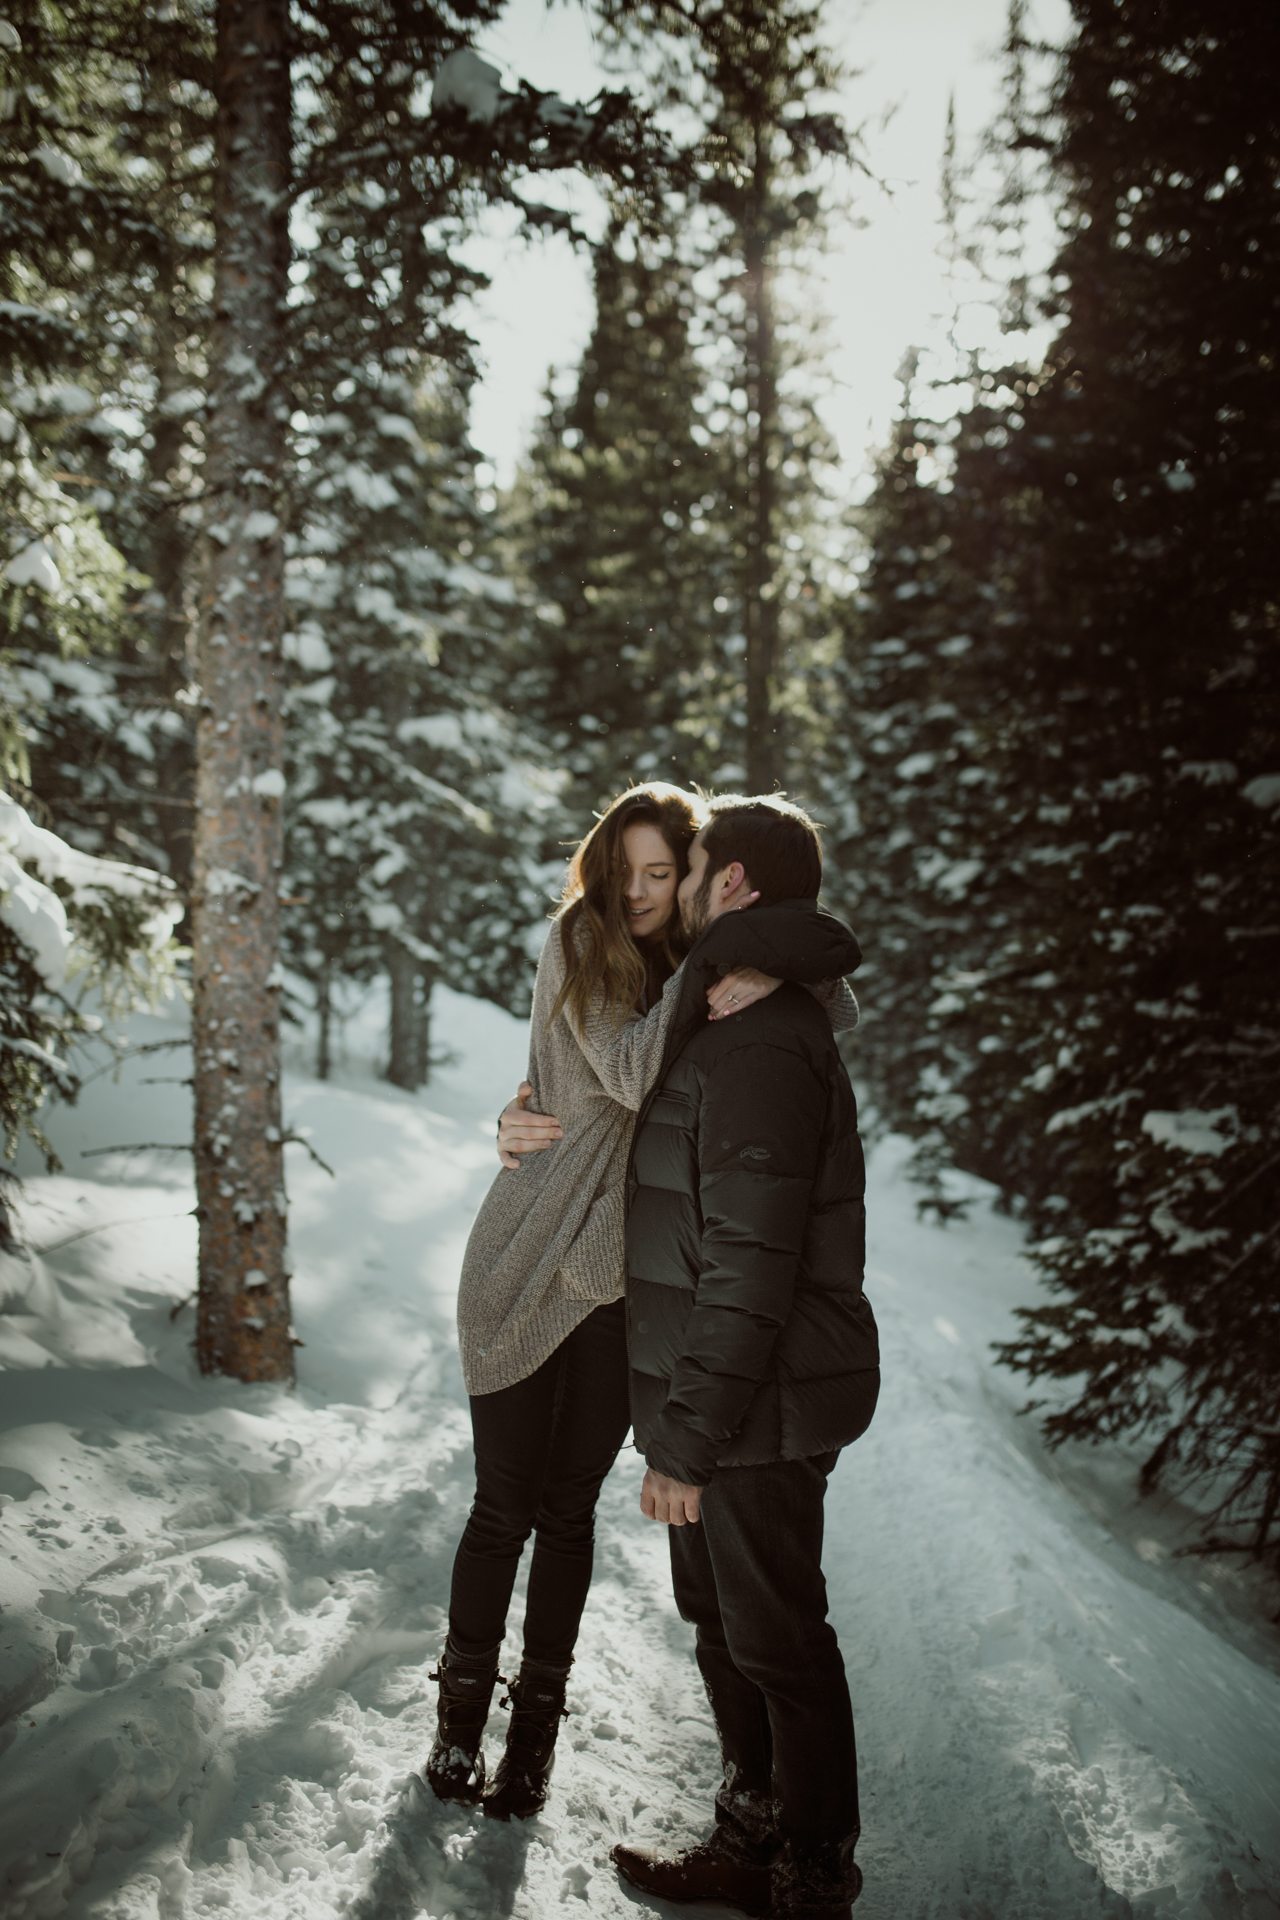 winter-rocky-mountain-national-park-engagements-2.jpg